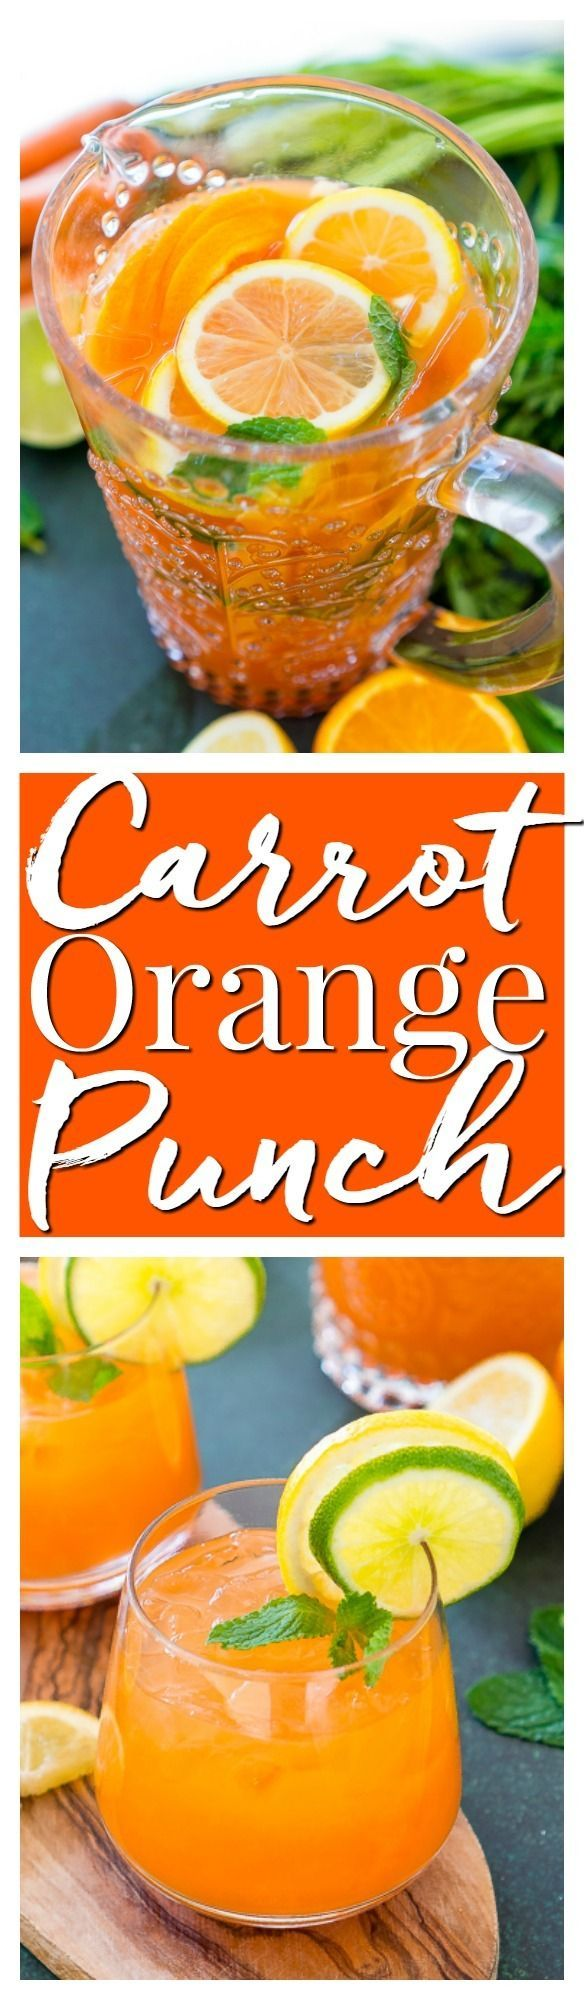 This Carrot Orange Punch is the perfect drink for spring, an easy mix of juice, soda, and fruit slices. It only takes 5 minutes to make and you can add alcohol if you want for a boozy punch! via @sugarandsoulco